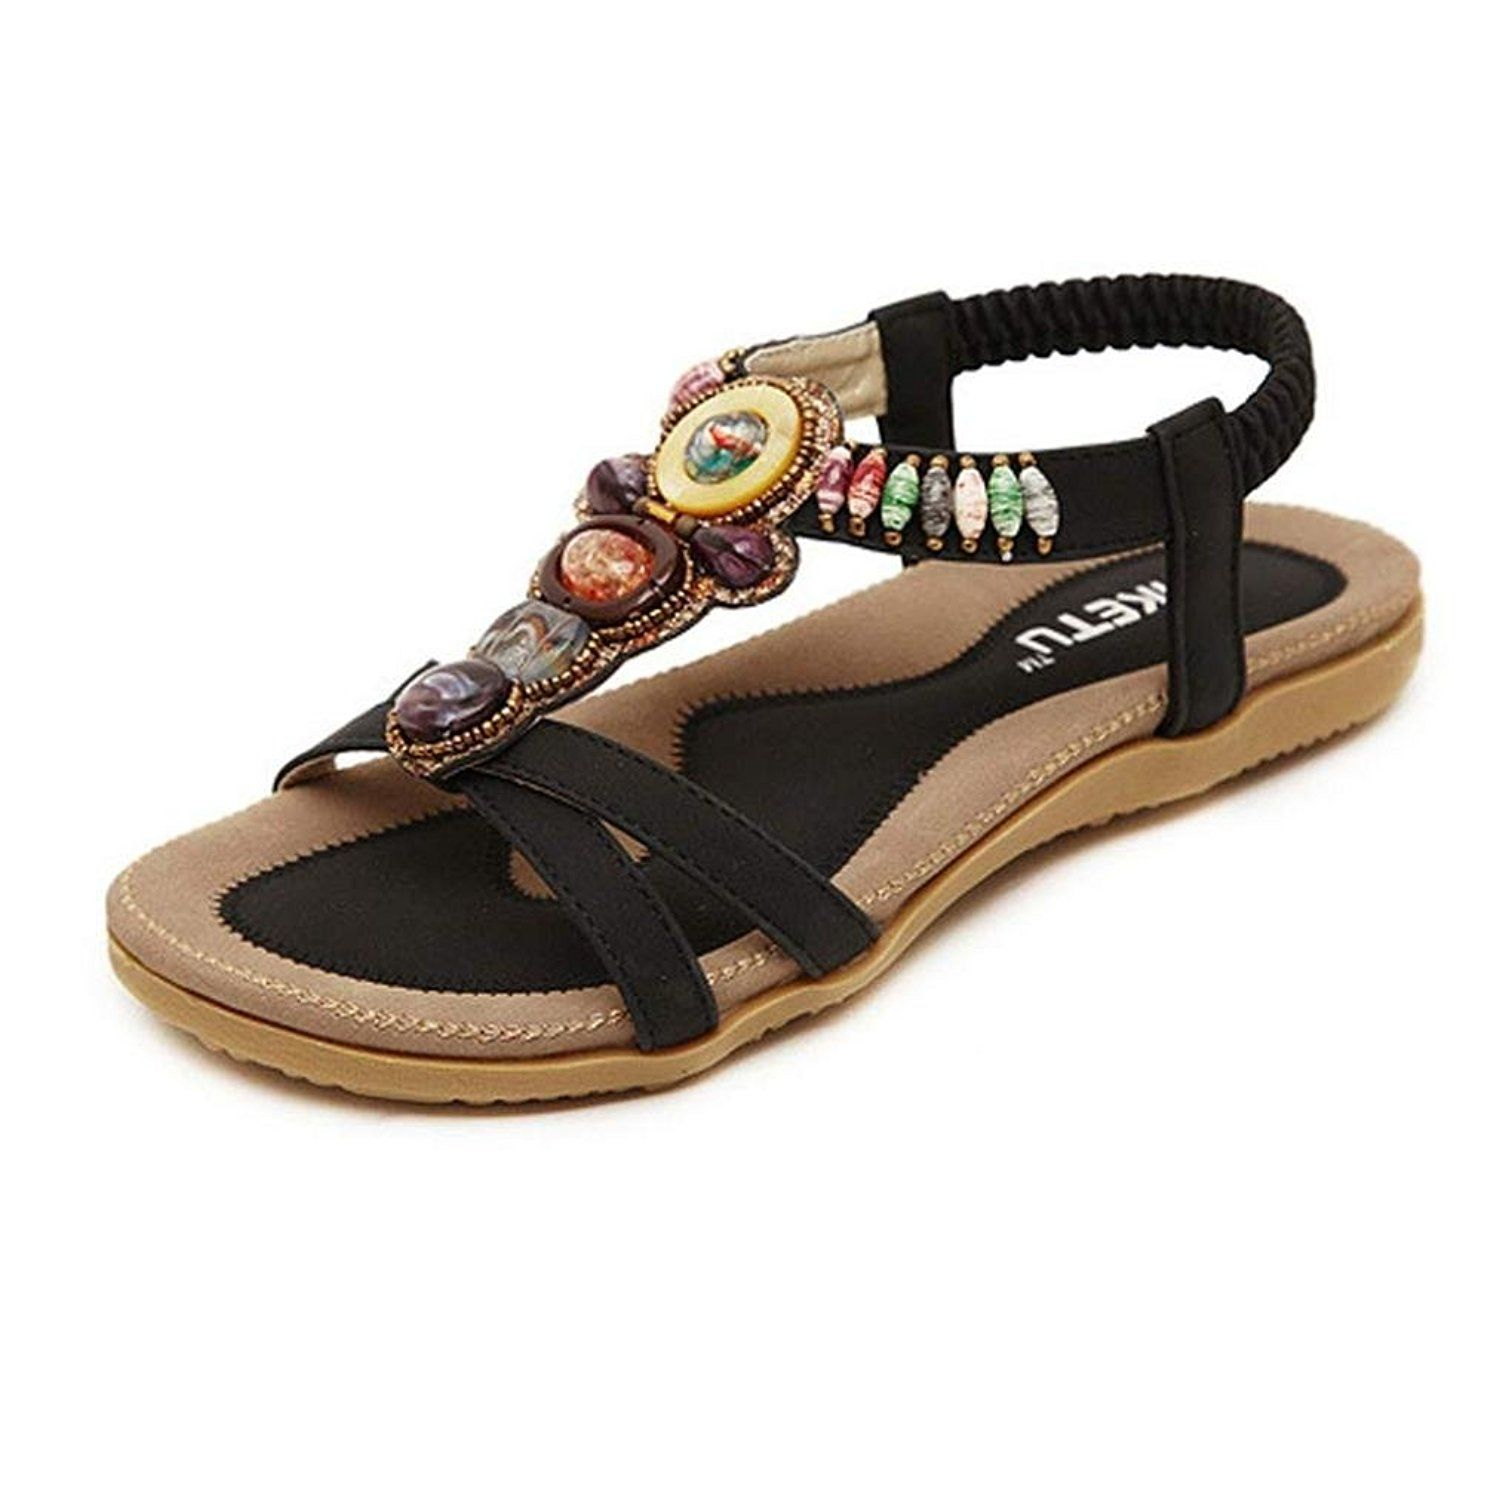 68f2f7250adb5 ... Strap Sandal. Inkach® Women Summer Sandals Women s Fashion Sweet Beaded  Clip Toe Flats Bohemian Herringbone Sandals    Details can be found by  clicking ...